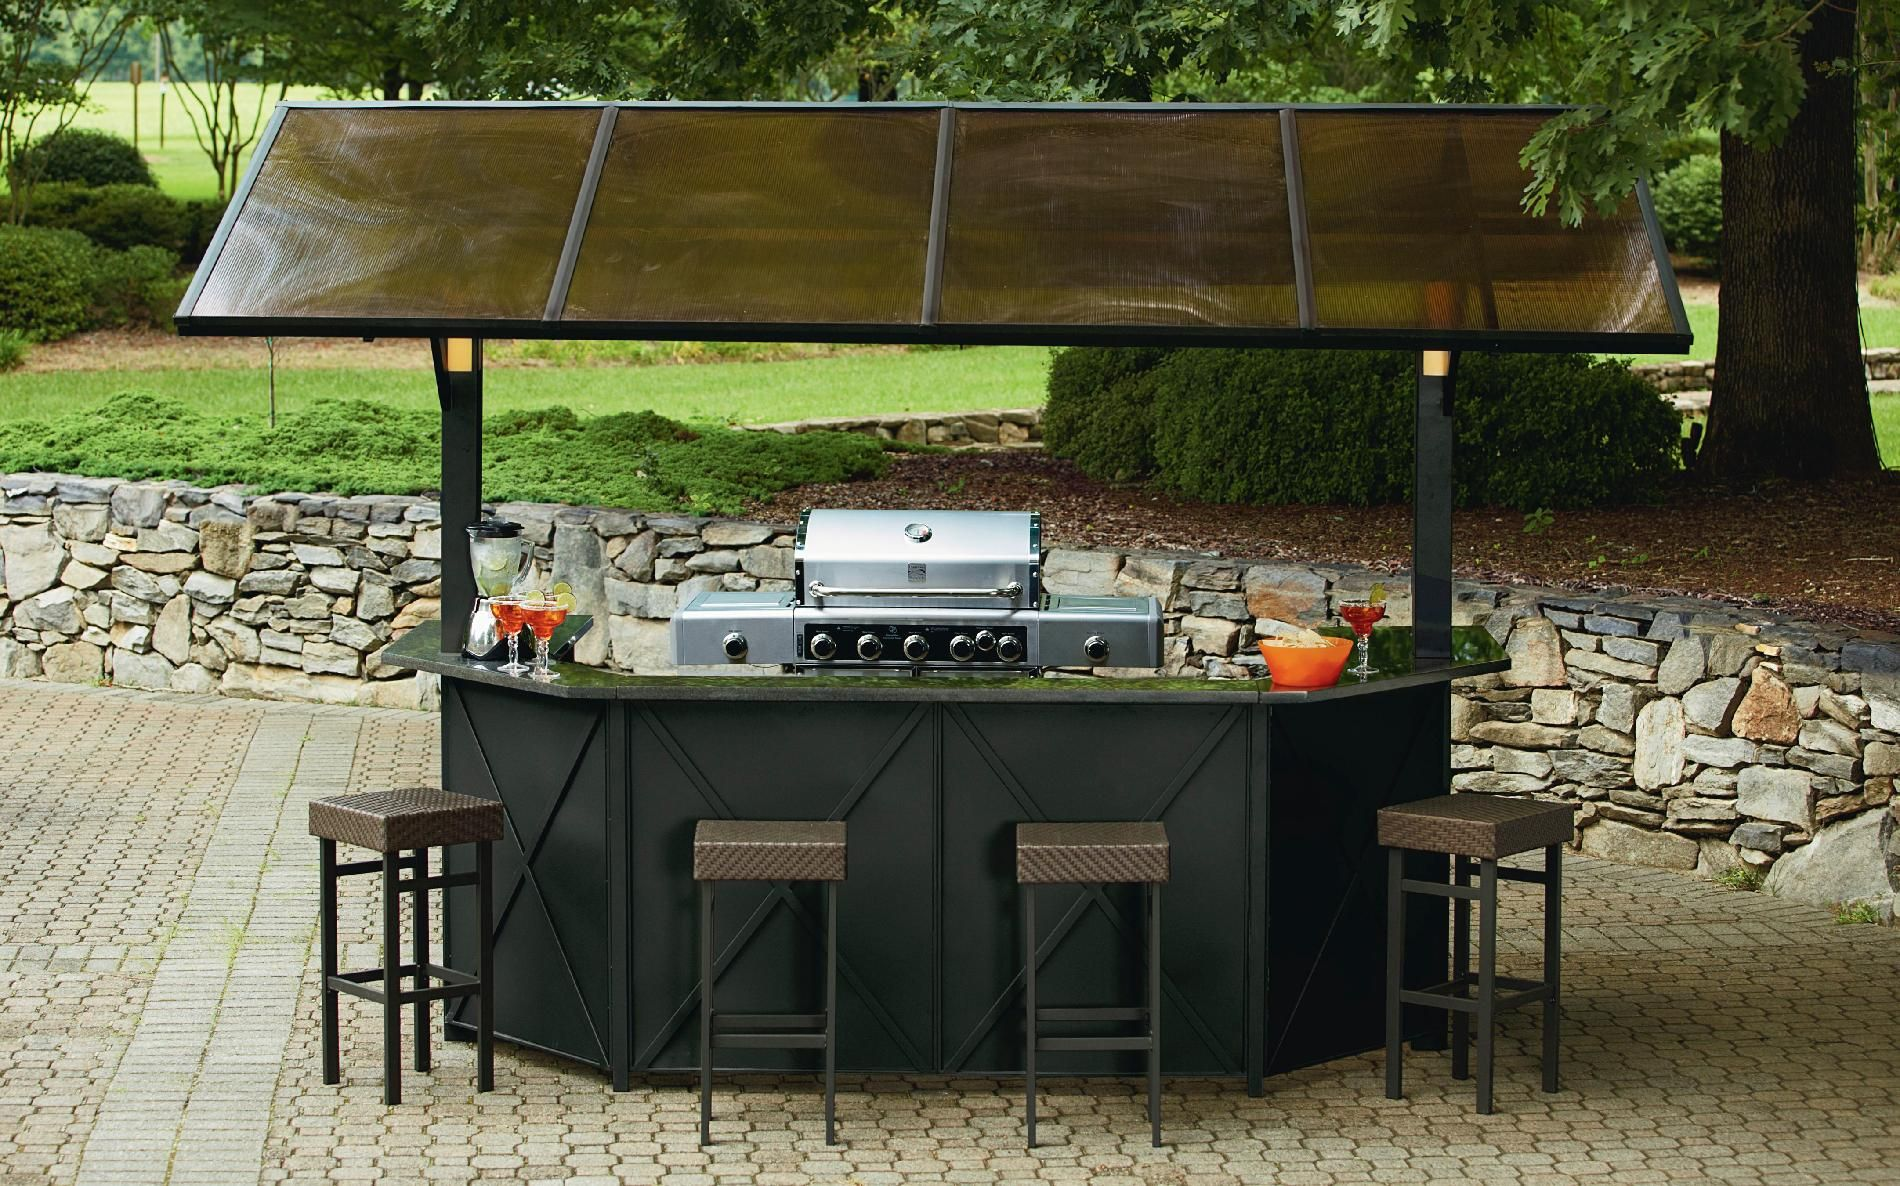 costco metal gazebos for sale | Metal Gazebo Kits ...